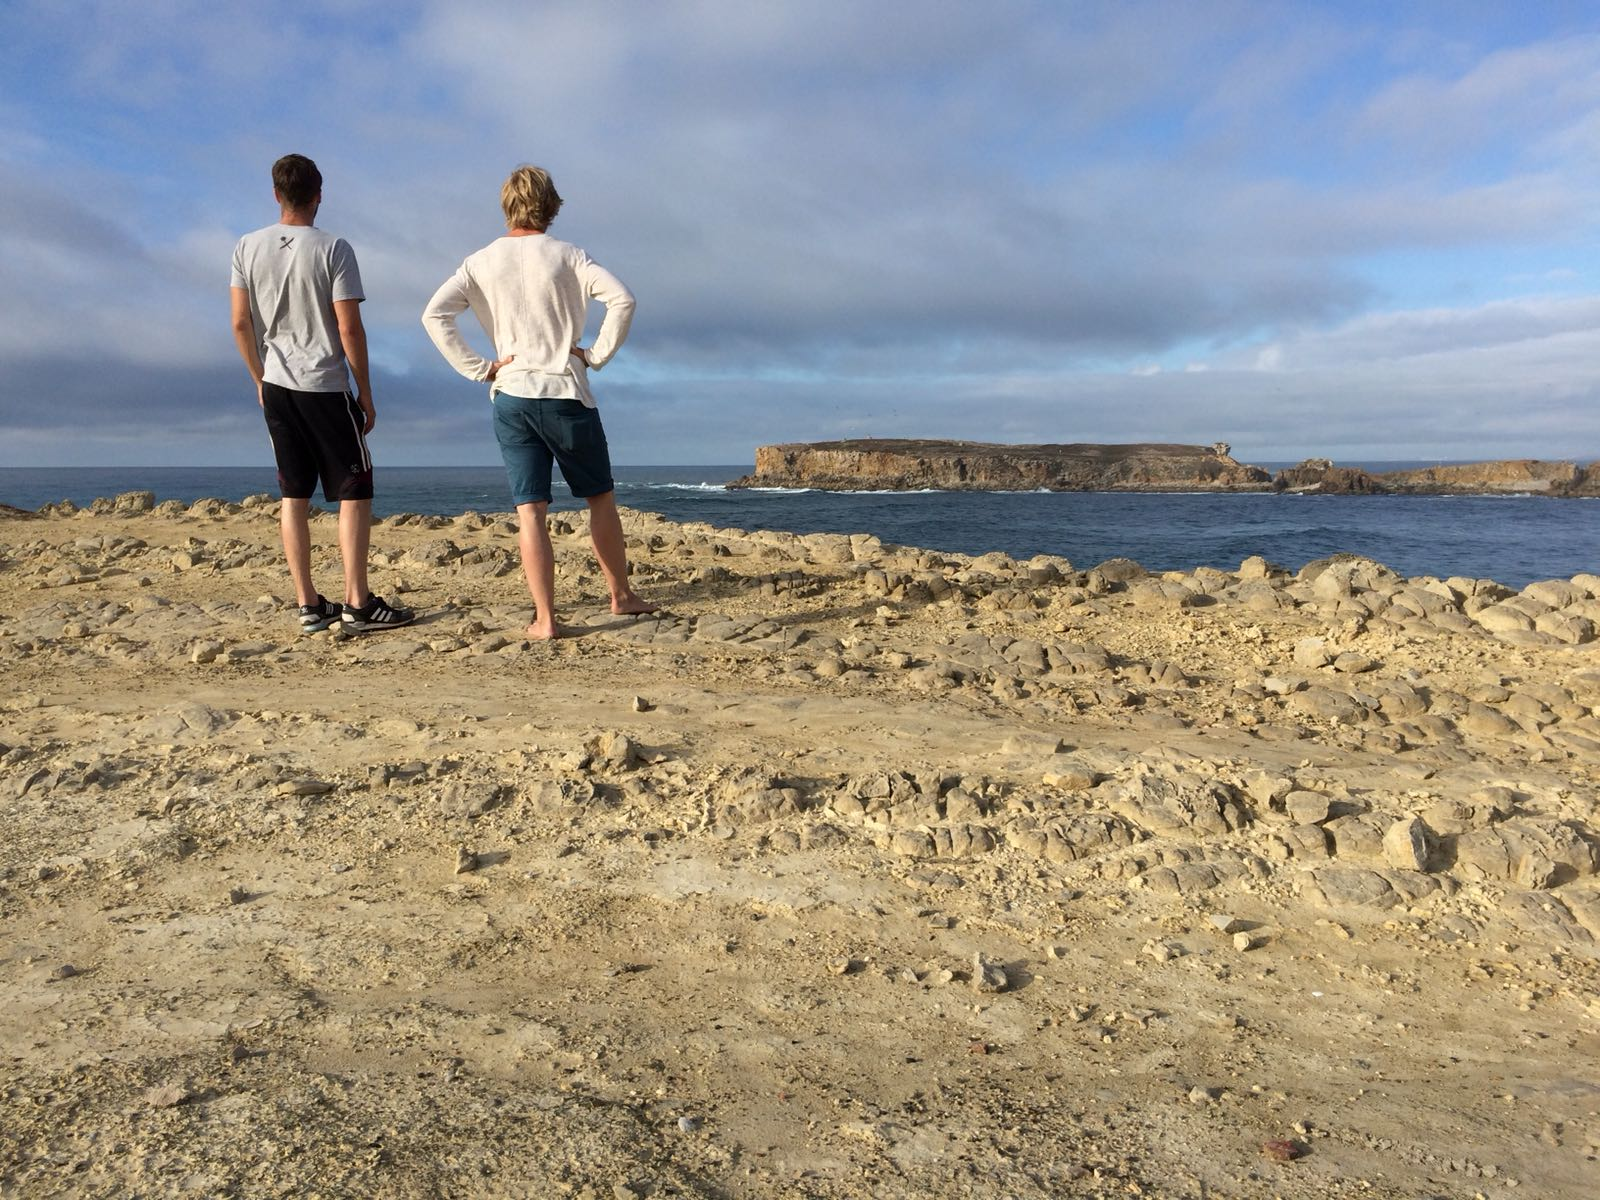 Friends of the author checking waves in Peniche